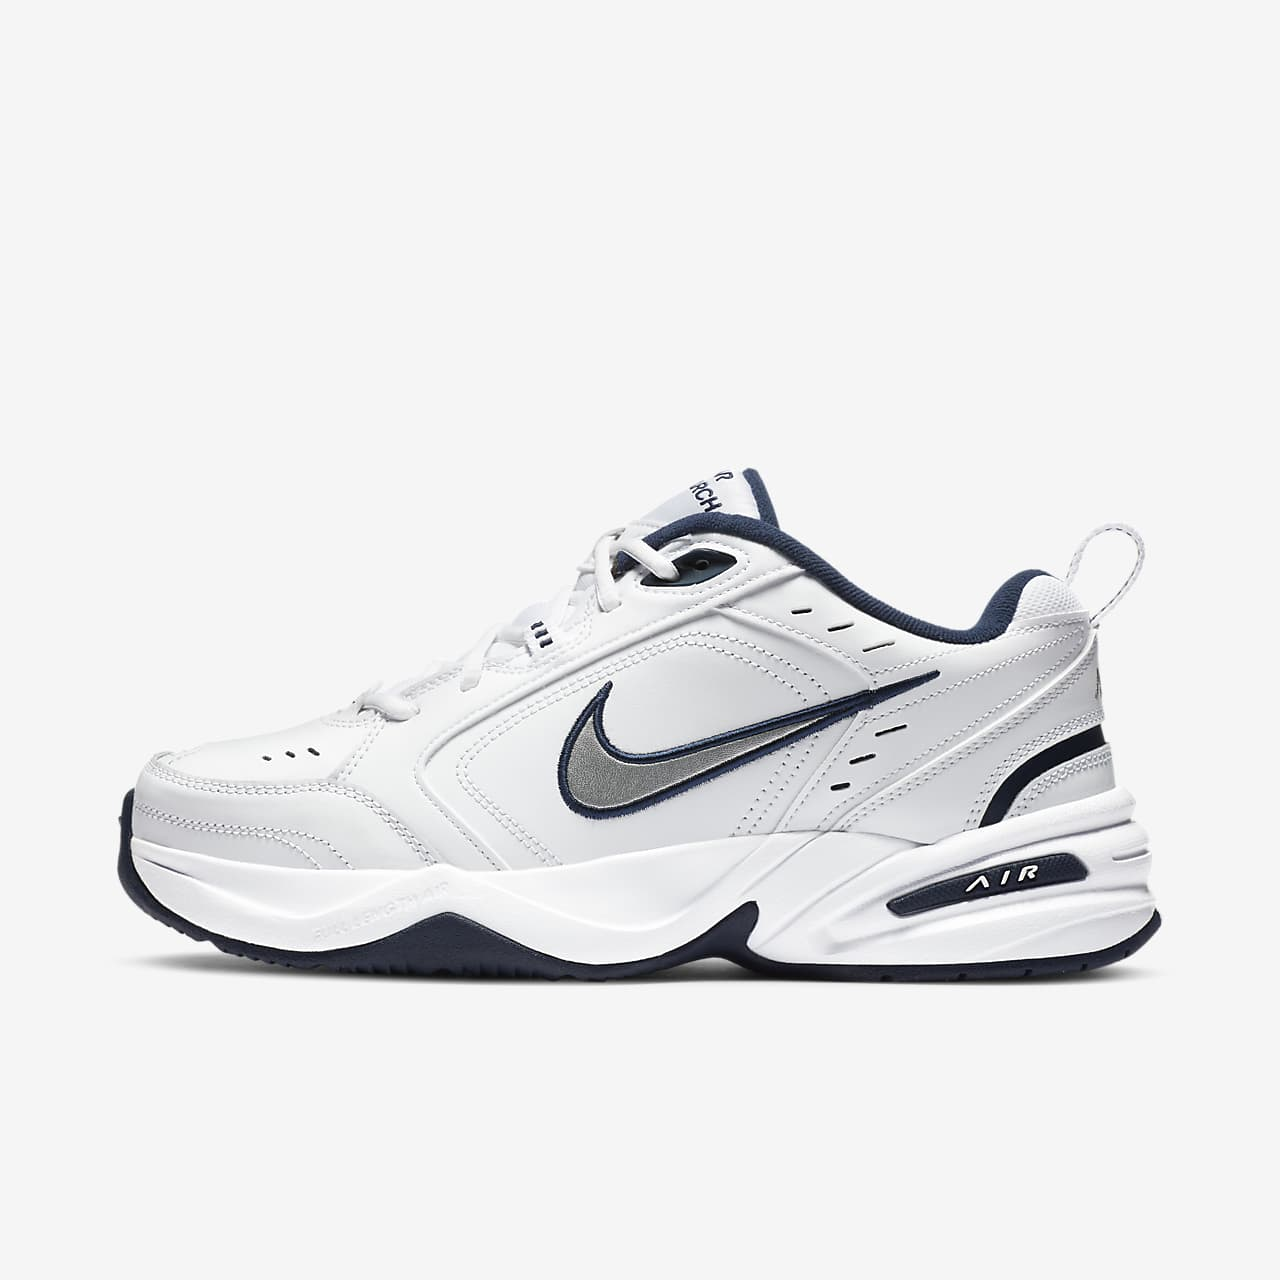 aa536c2ab0baf Nike Air Monarch IV Lifestyle Gym Shoe. Nike.com AU